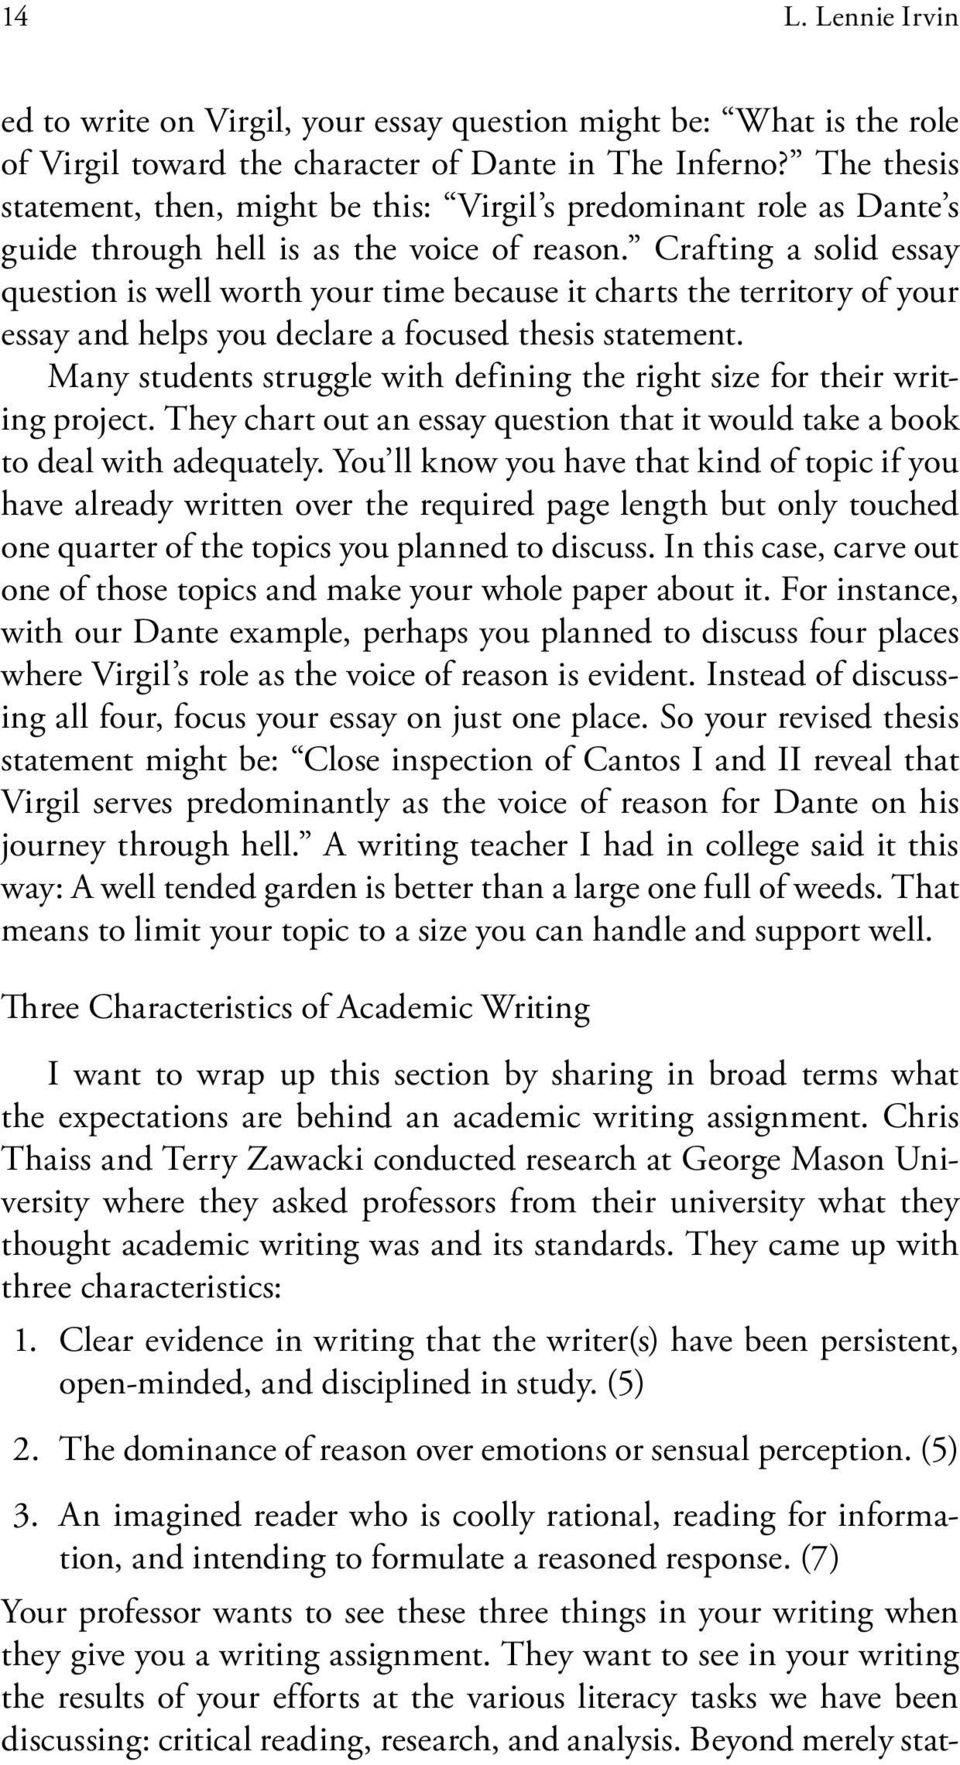 Crafting a solid essay question is well worth your time because it charts the territory of your essay and helps you declare a focused thesis statement.